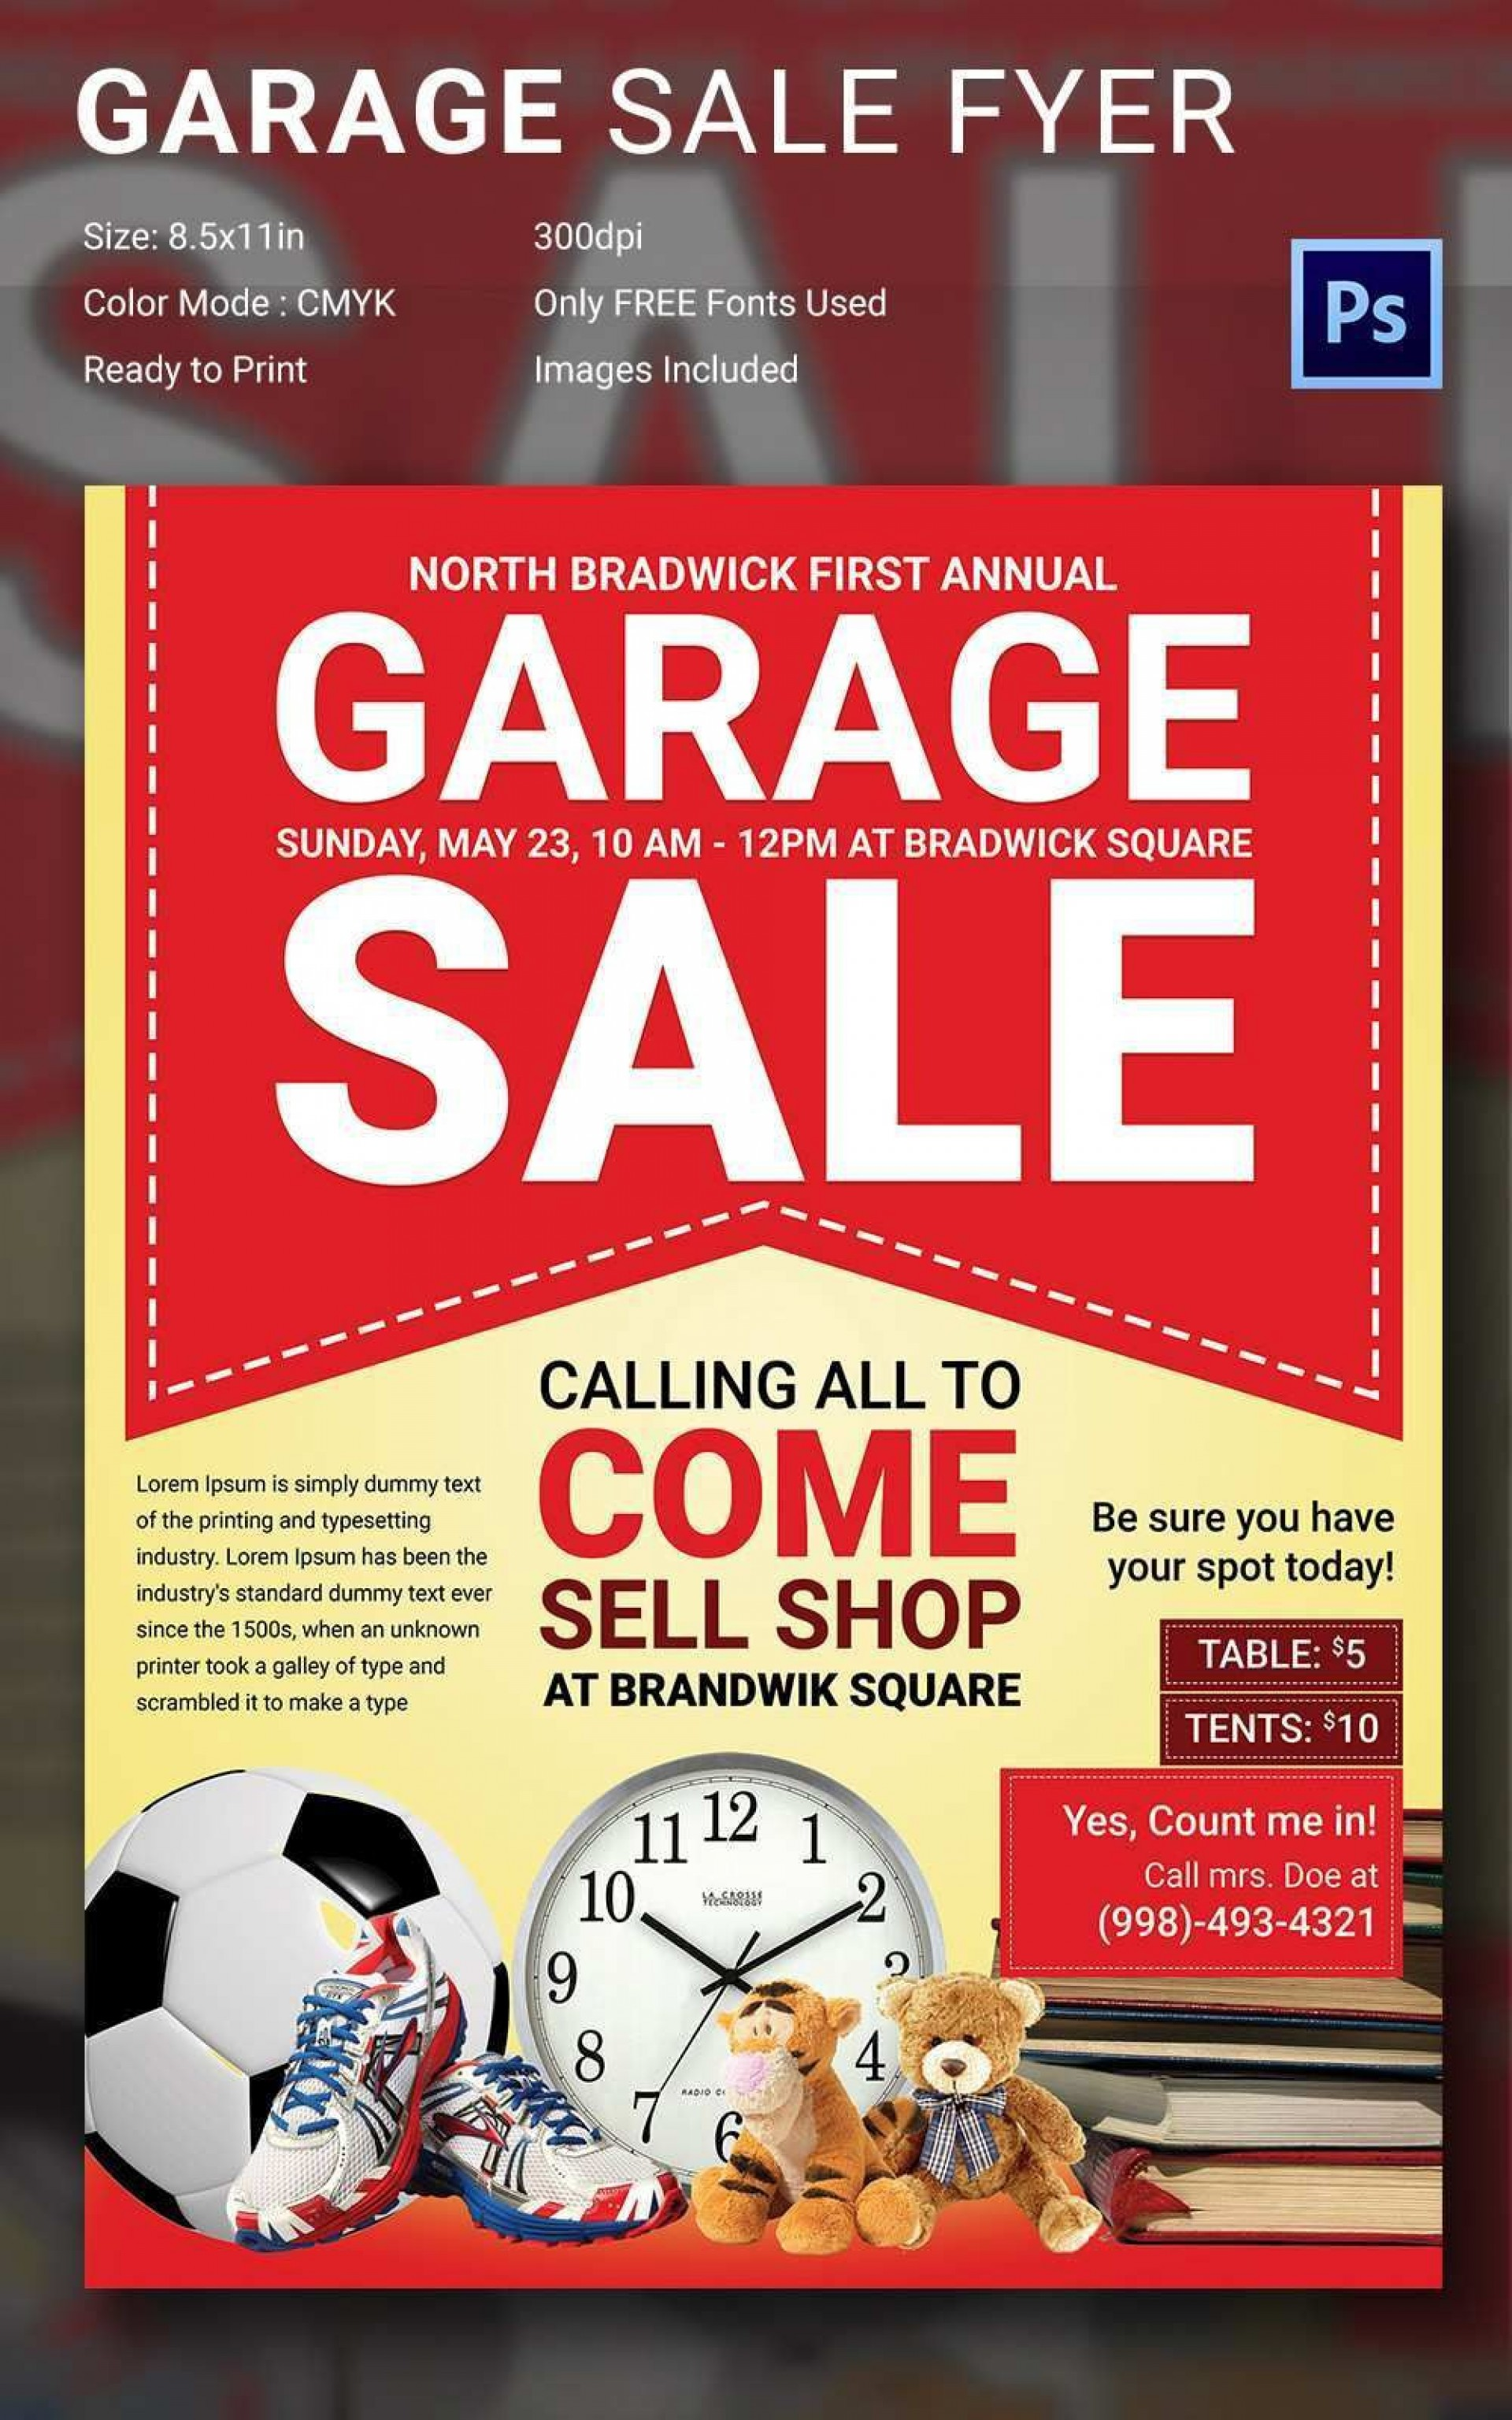 000 Awful Yard Sale Flyer Template Free Picture  Community Garage1920